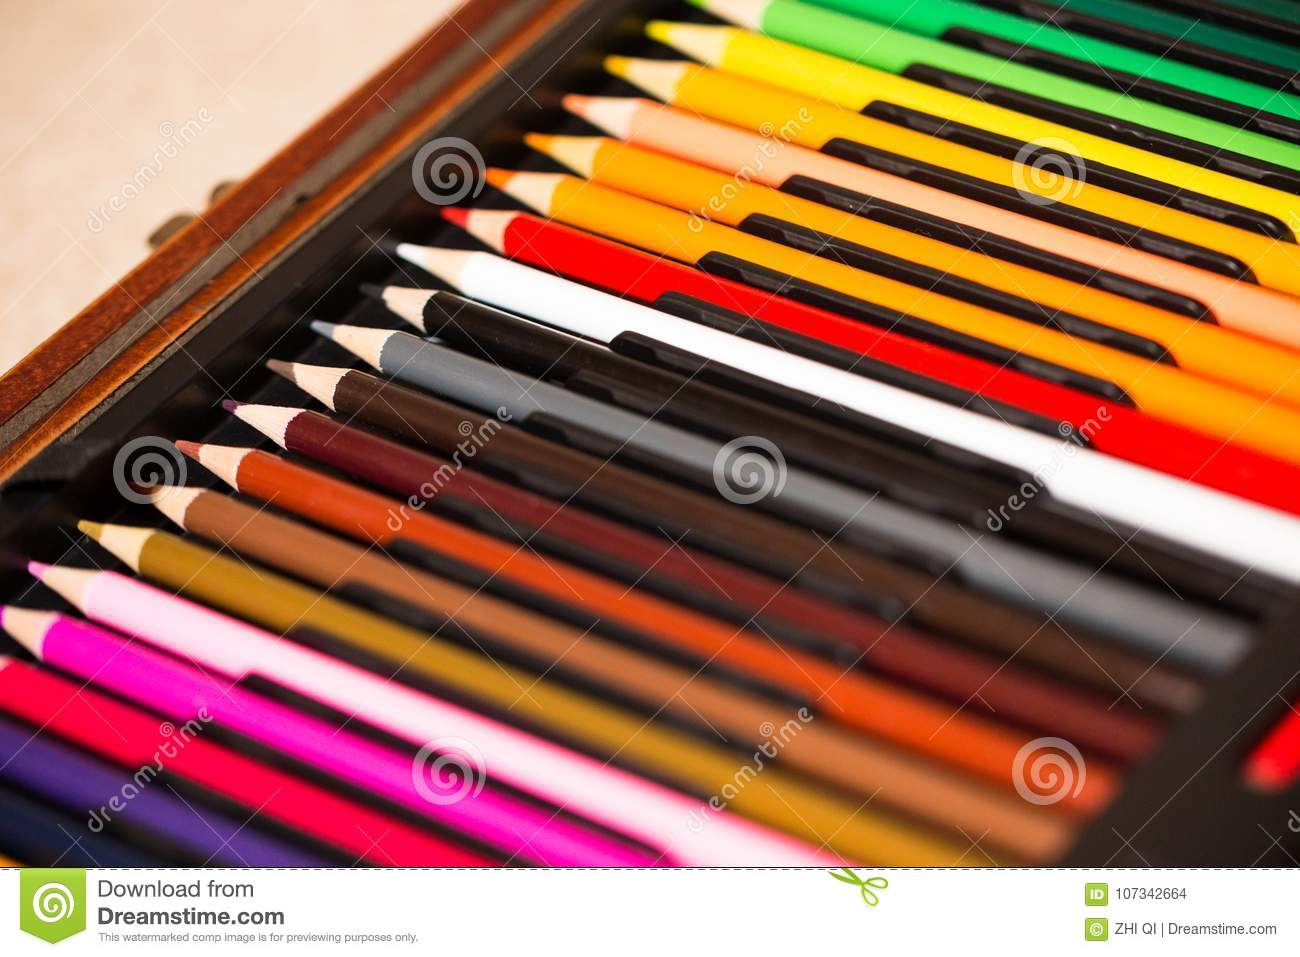 crayons colored pencil set loosely arranged on white background